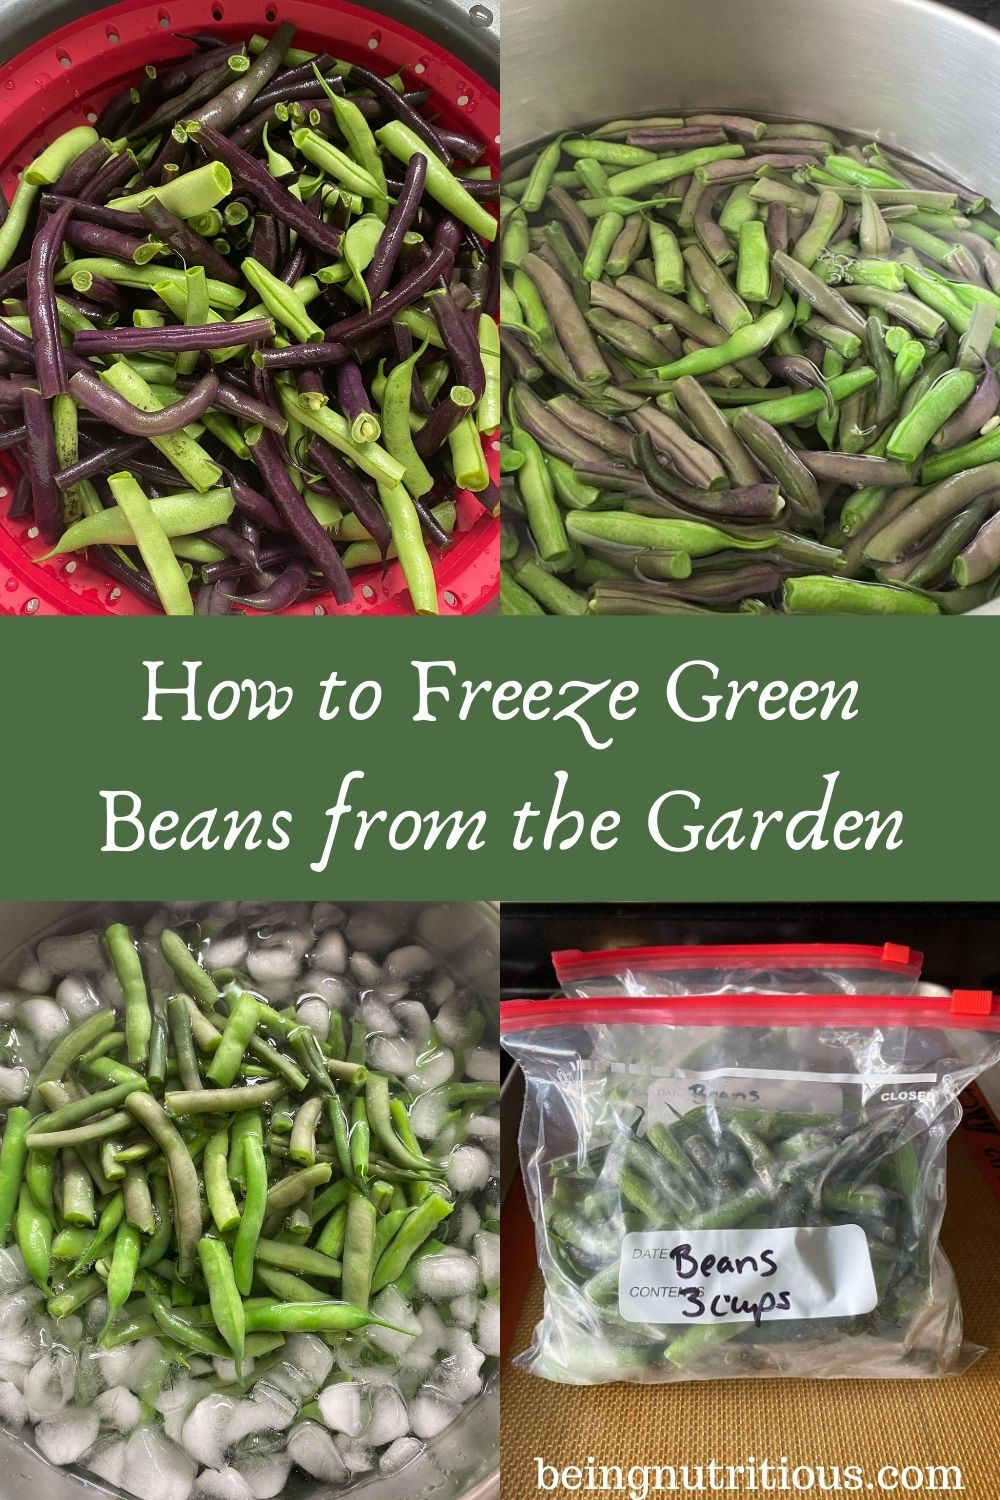 4 images: first is fresh beans, second is beans in boiling water, 3rd is blanched beans in ice bath, and 4th is frozen beans in zipper bags. Text overlay in green rectangle: How to Freeze Green Beans from the Garden.